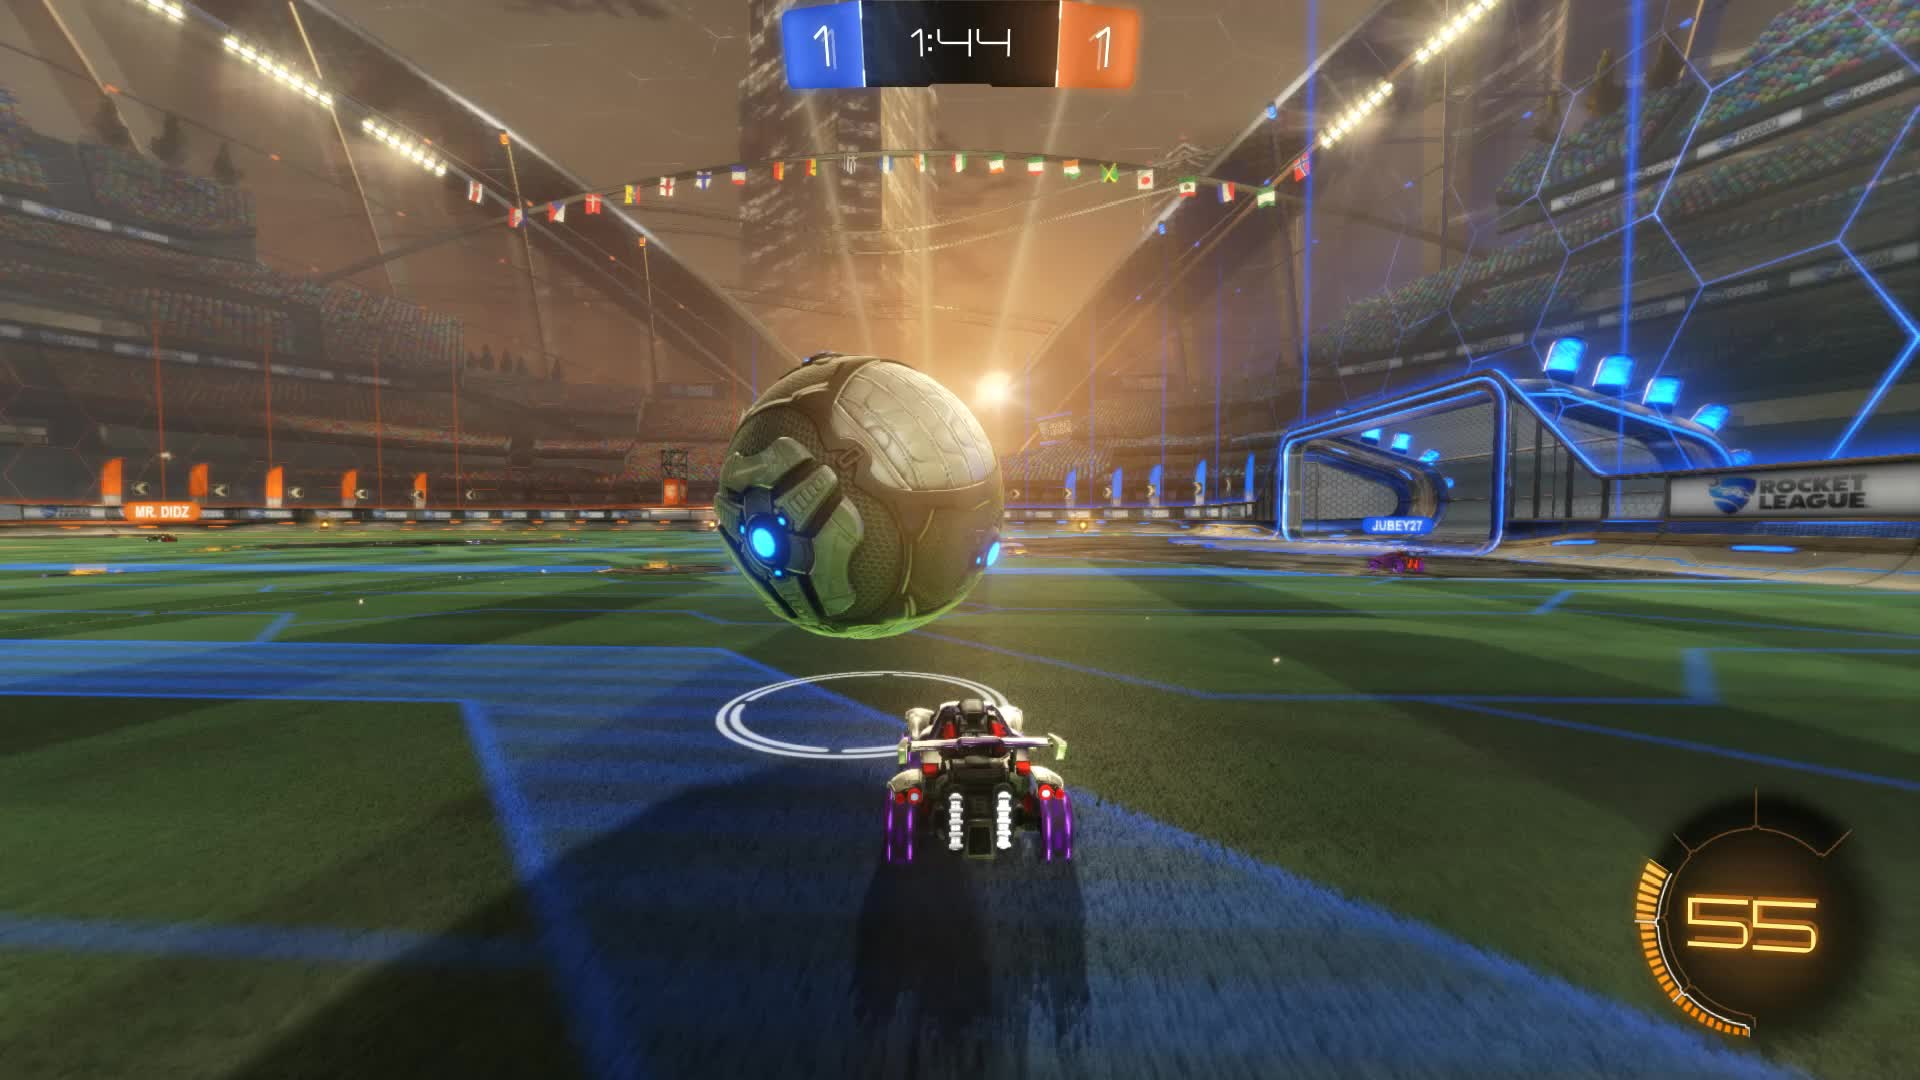 Gif Your Game, GifYourGame, Goal, Rocket League, RocketLeague, ScriptedFlick, Goal 3: ScriptedFlick GIFs